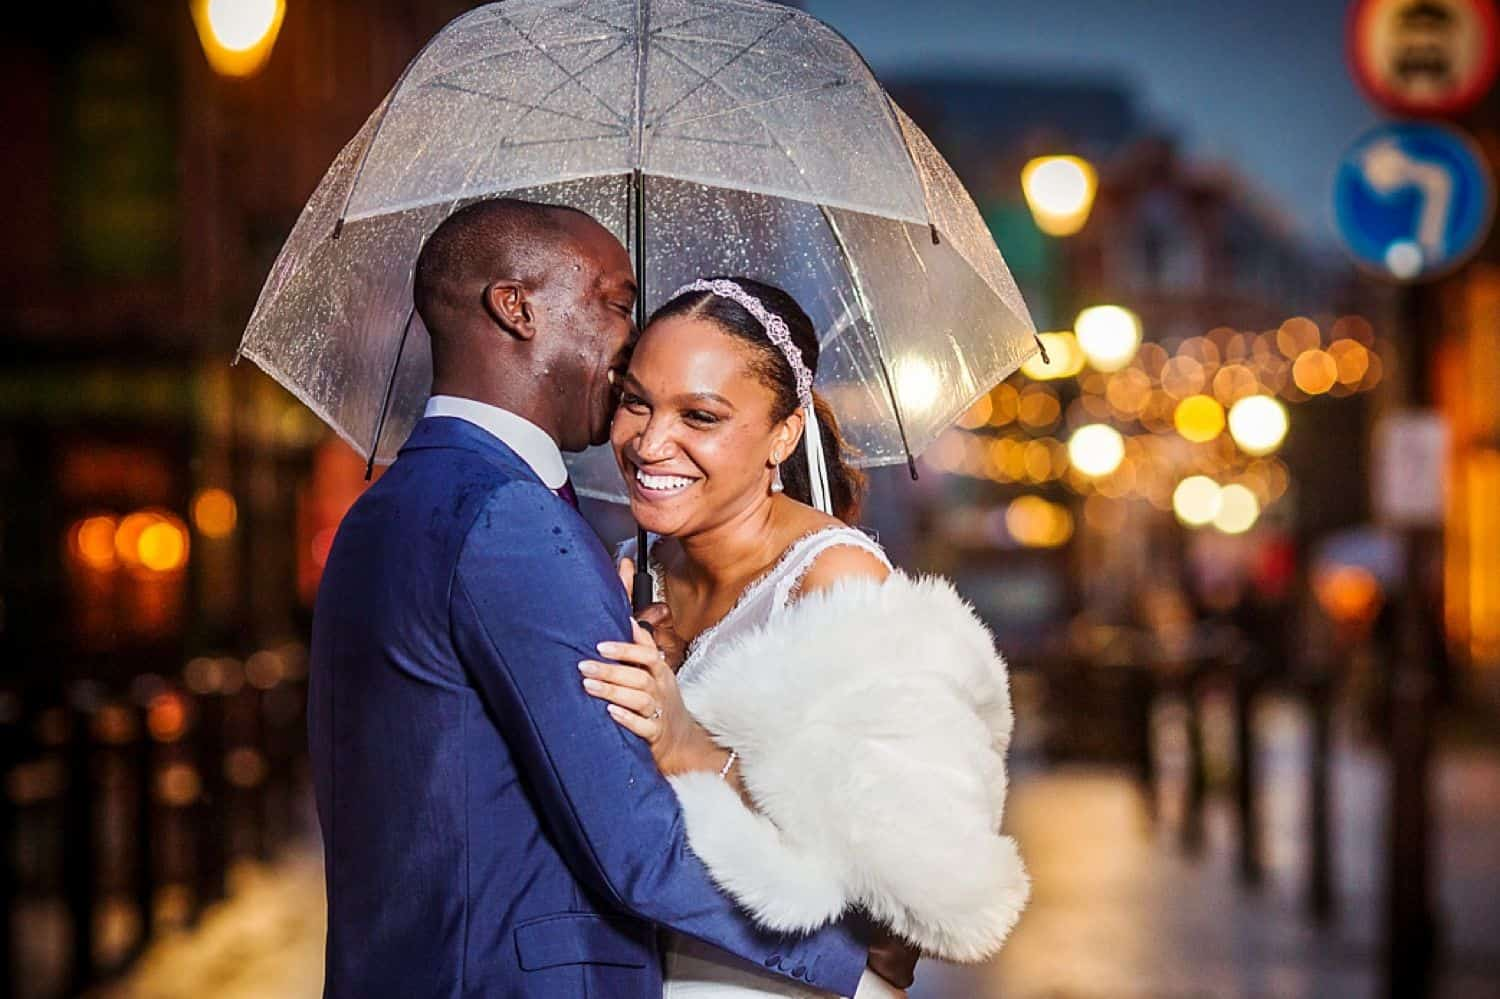 A groom in a blue tux hugs his bride in a white fur as they stand under an umbrella